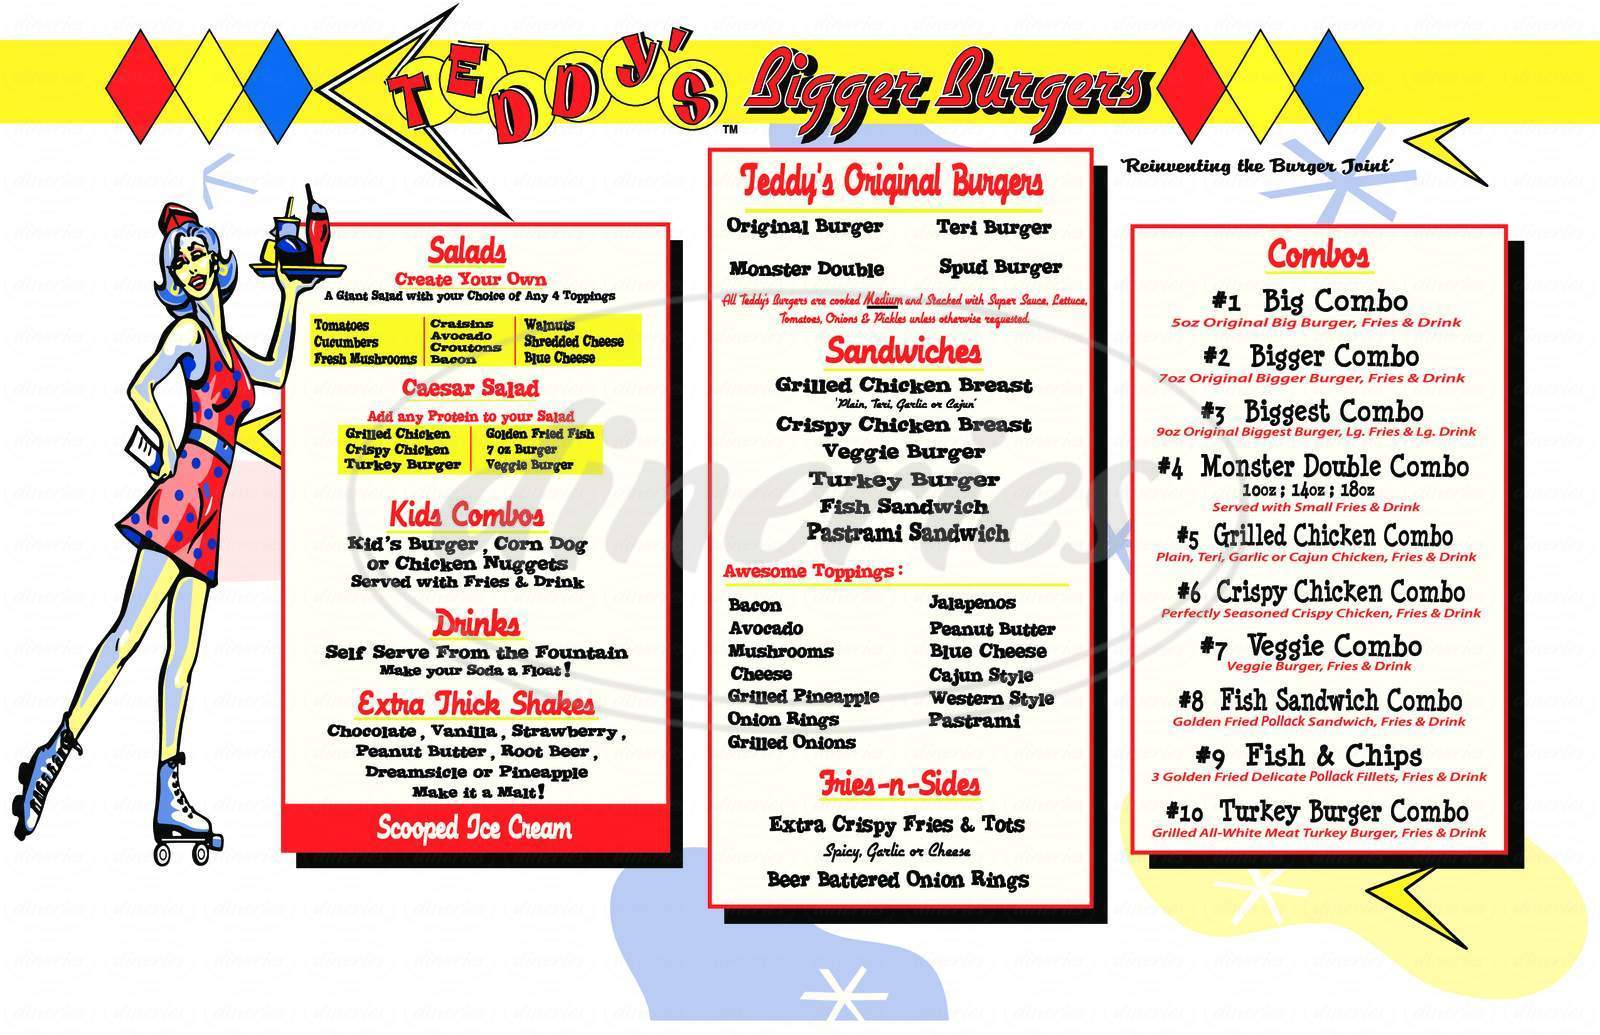 menu for Teddy's Bigger Burgers